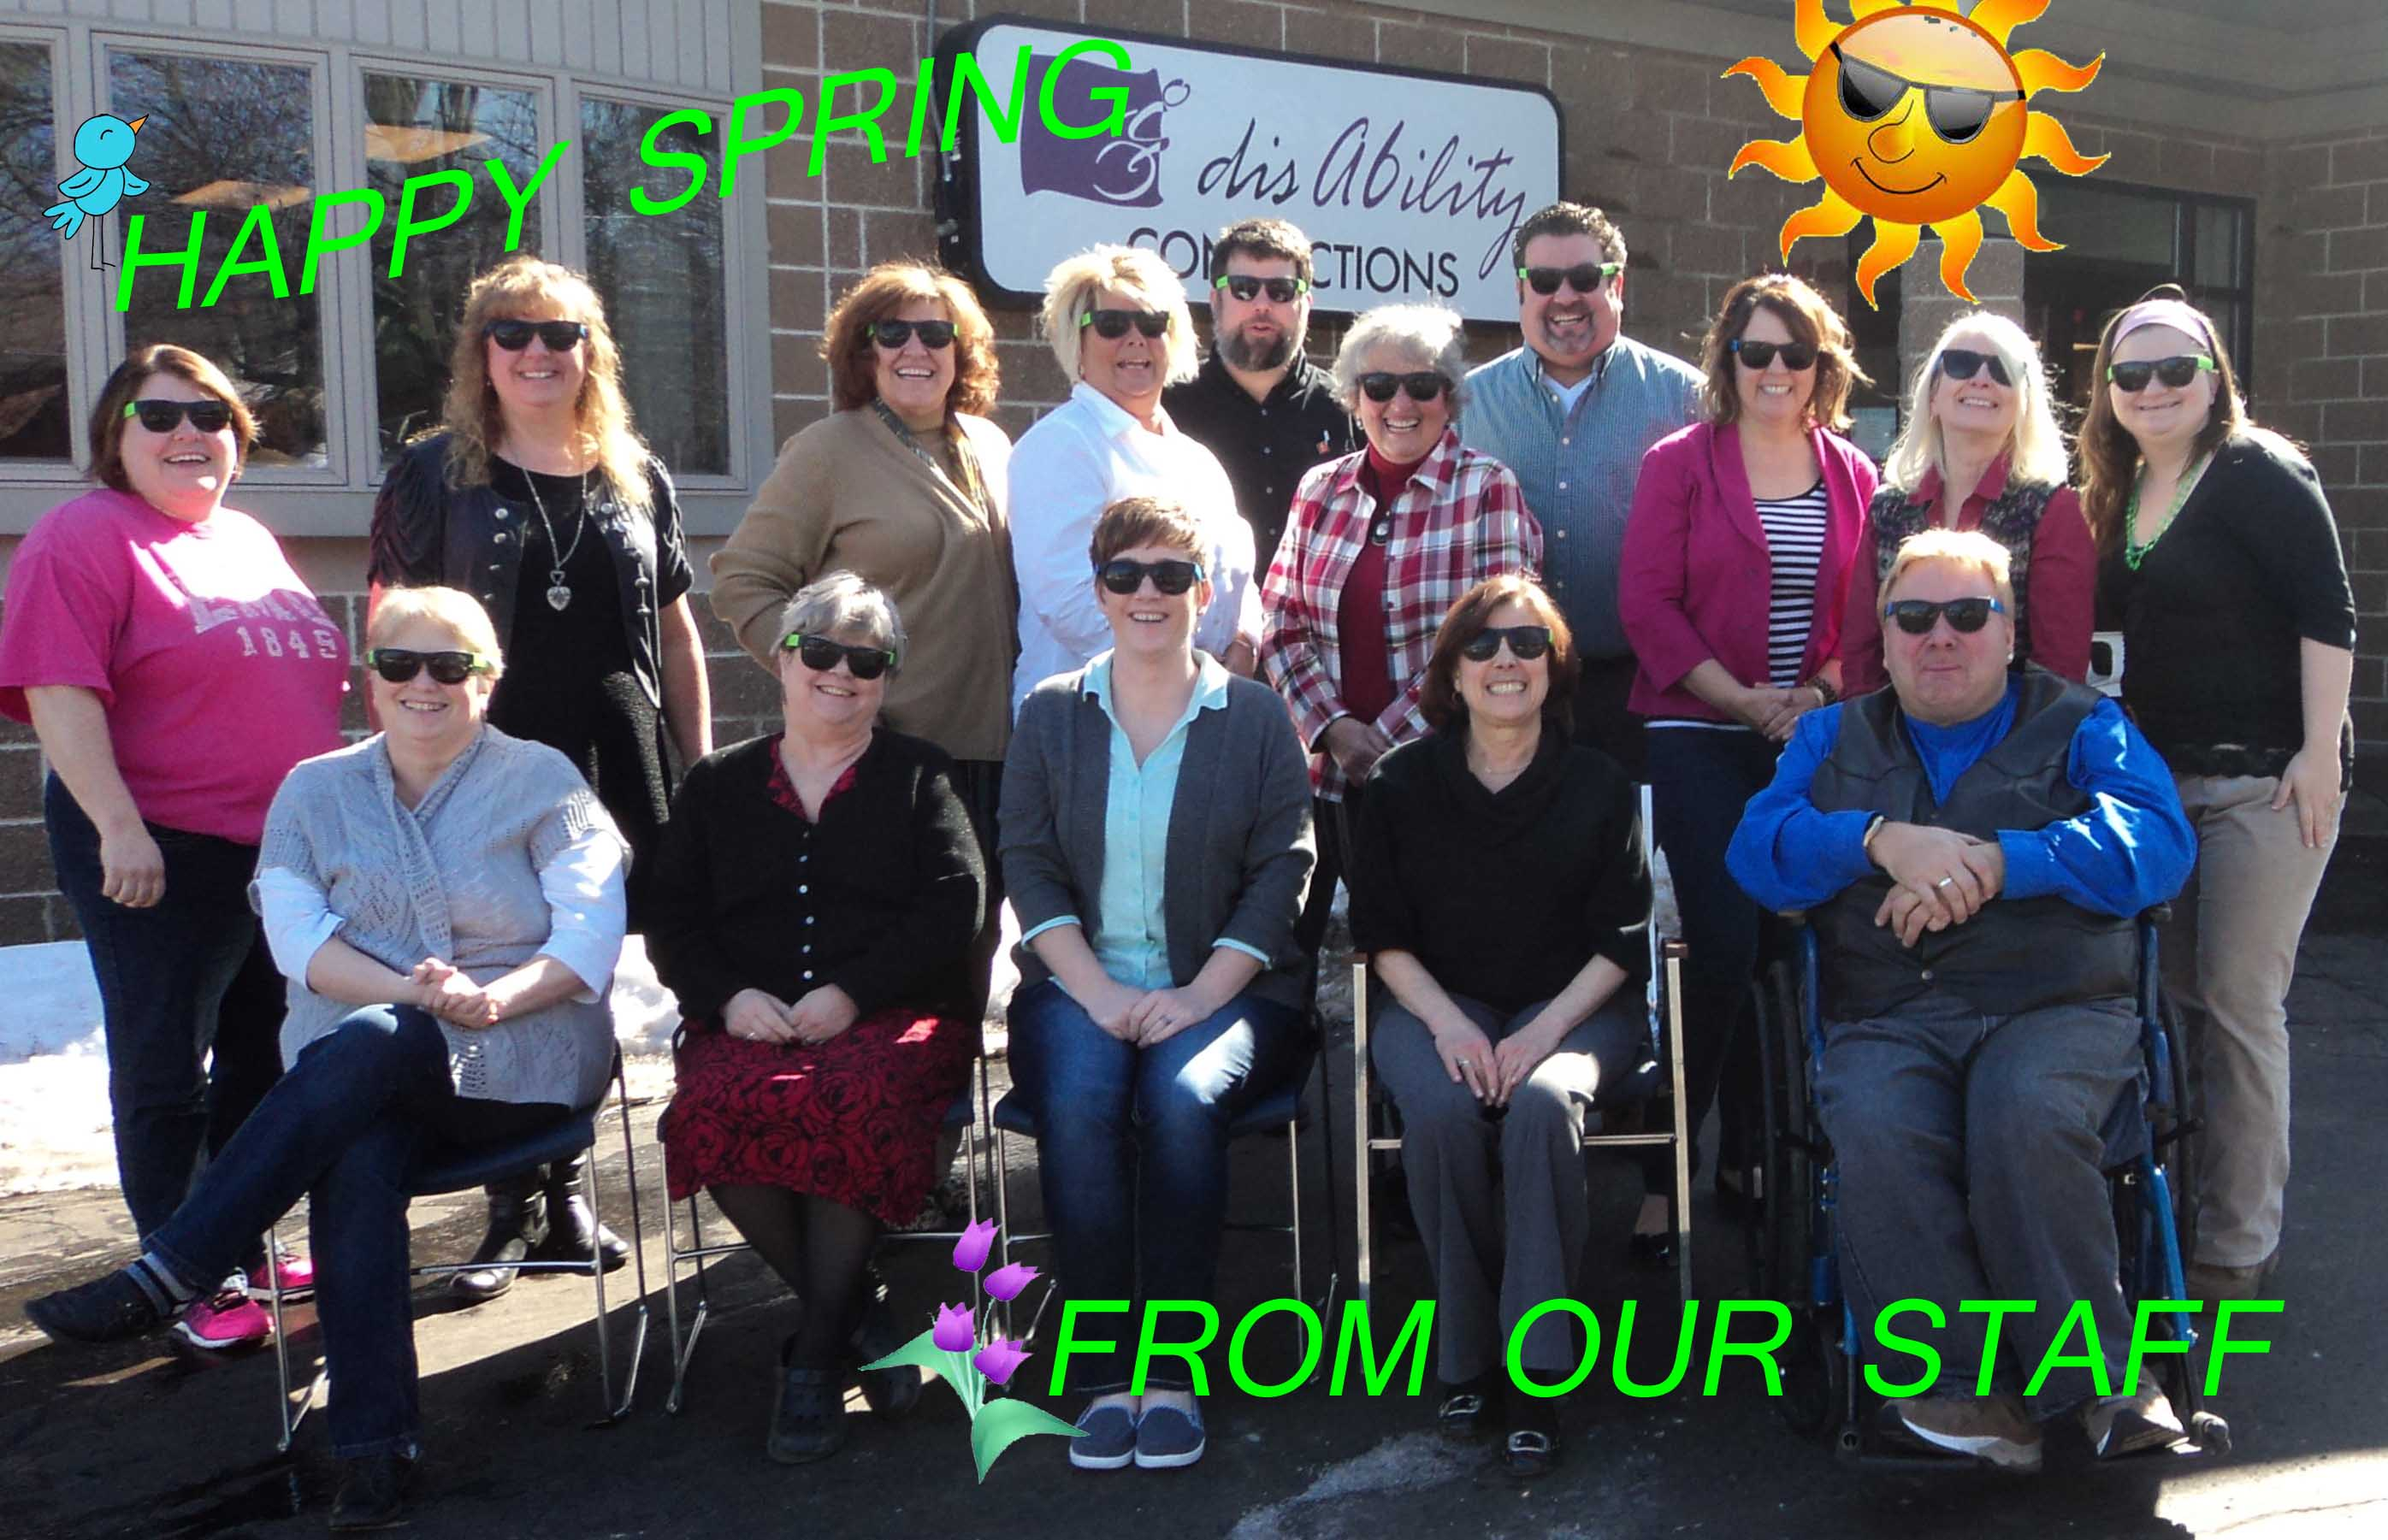 HAPPY SPRING FROM OUR STAFF